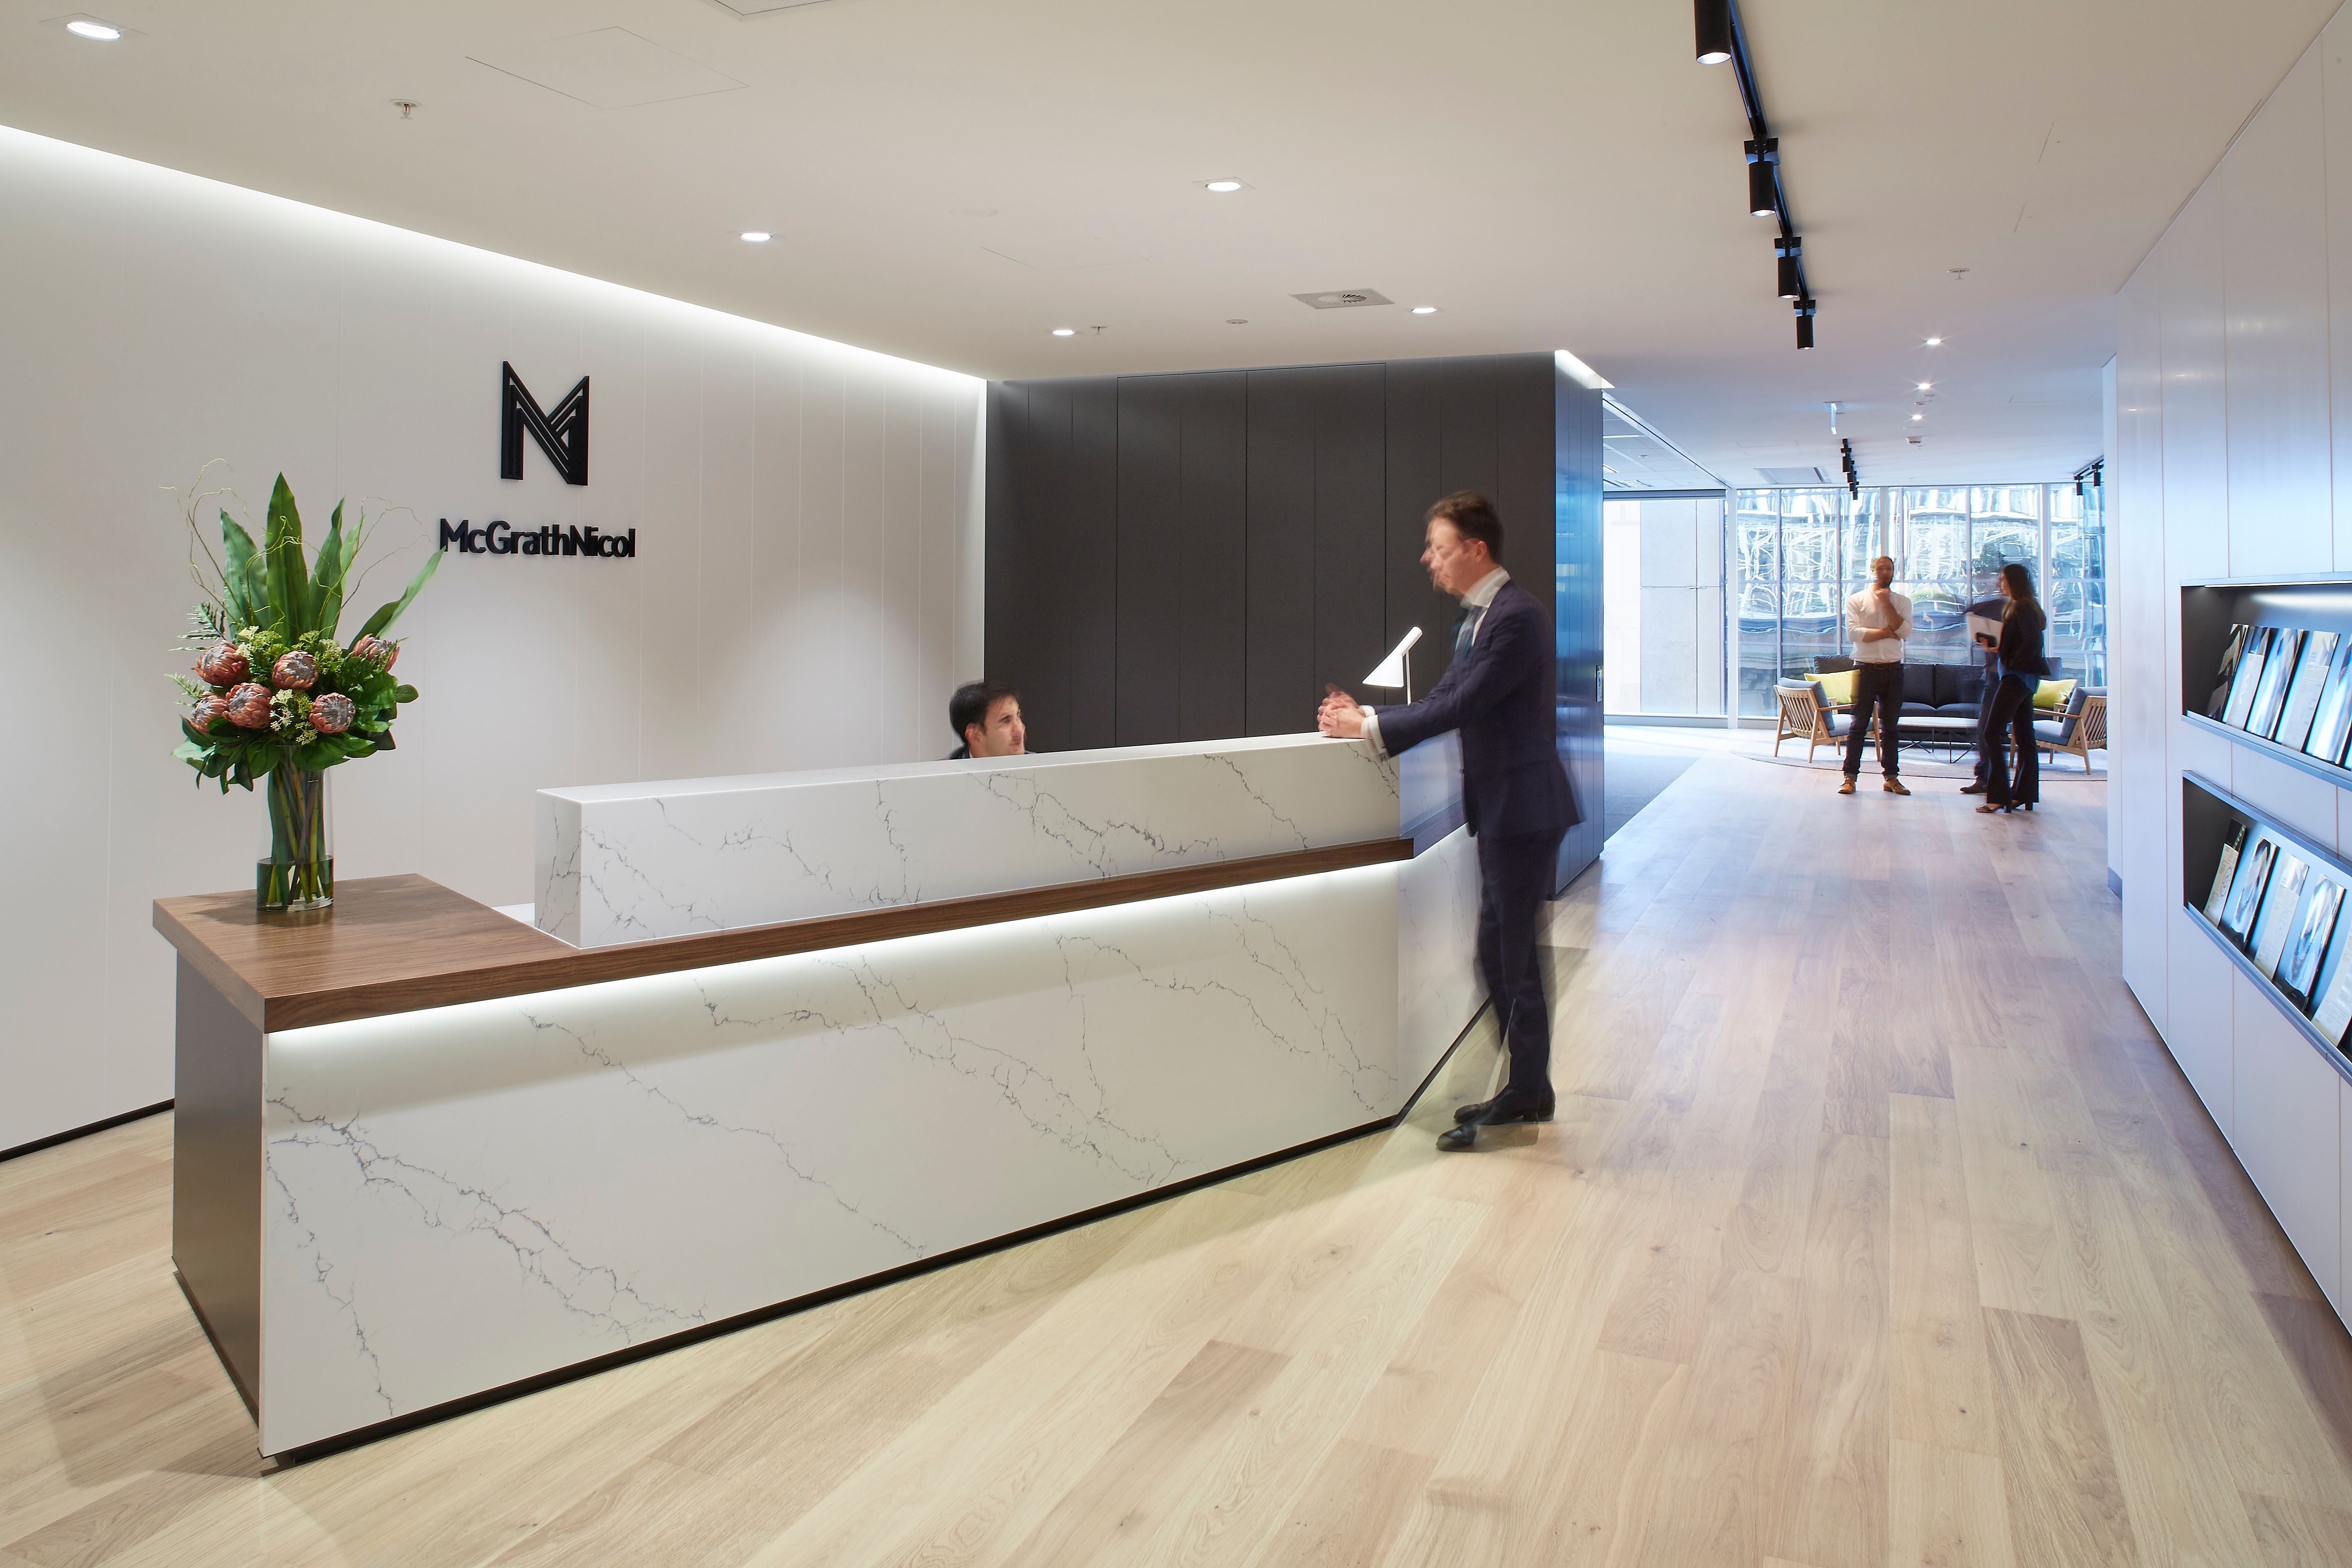 McGrathNicol Sydney Interior Design, Project & Construction Management Project Image 3 by PCG